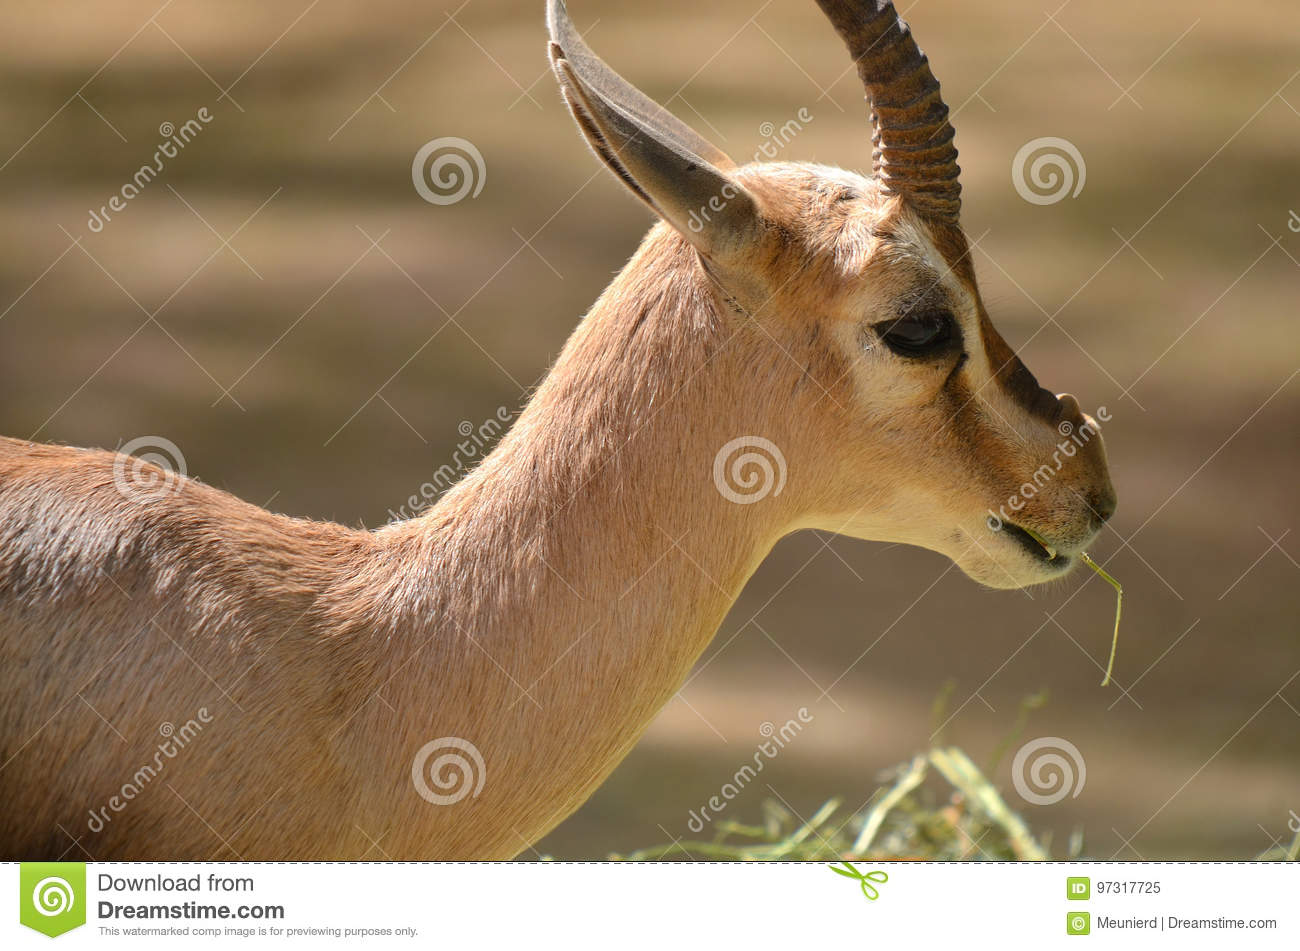 Gazelle - the animal of the steppes and deserts 35